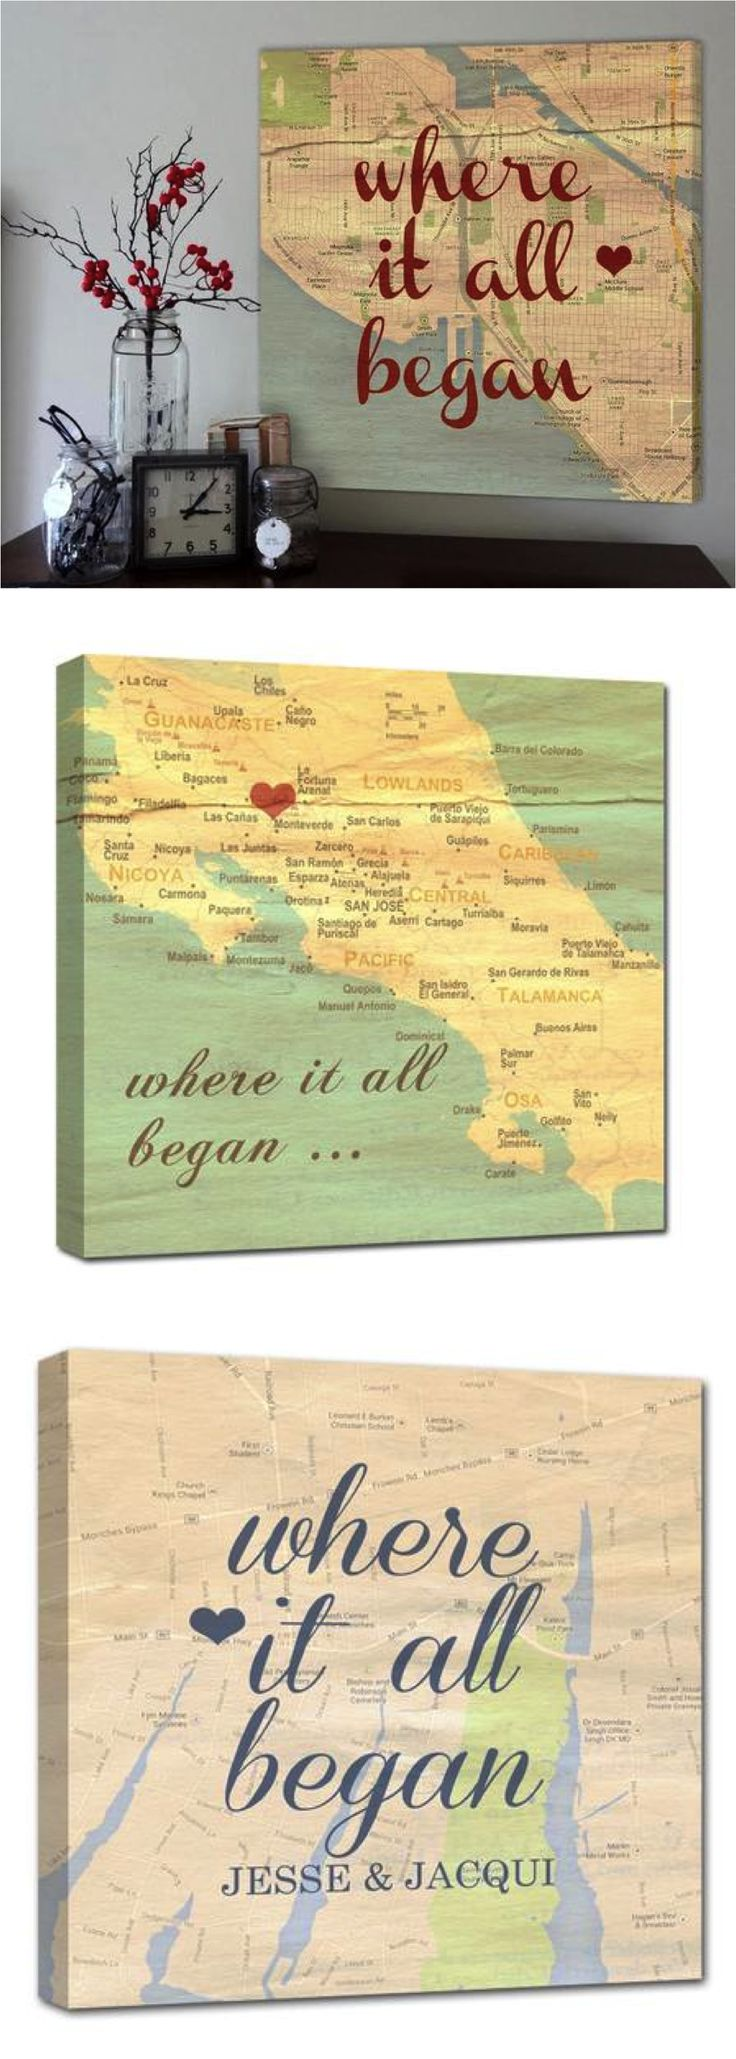 Personalized maps with names dates, a vintage twist to a map of the place you met, married, honeymooned. | Made by people who care on Hatch.co